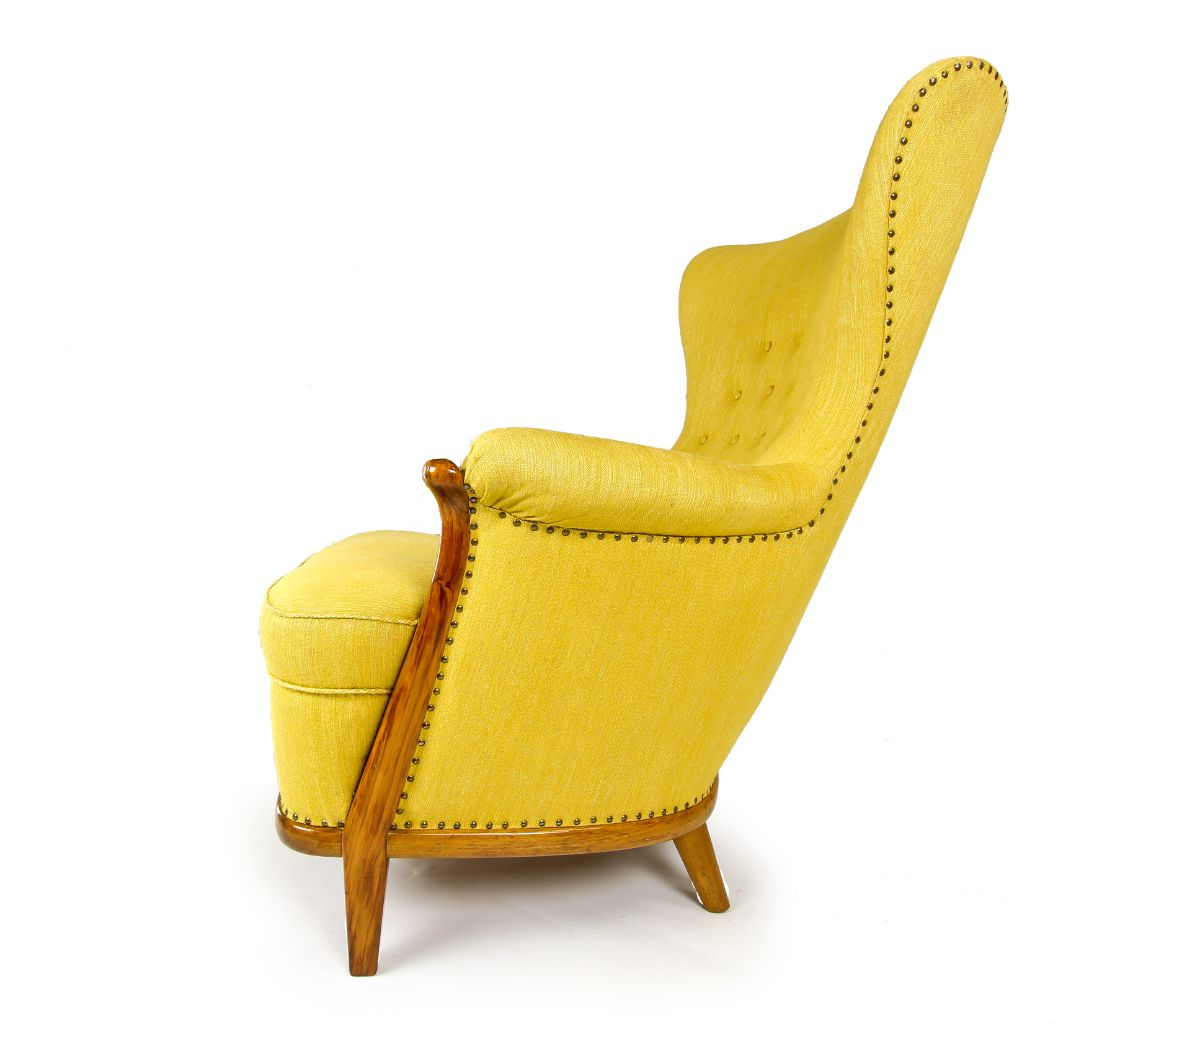 Yellow Wool chair mid century furniture Swedish chair 1950's